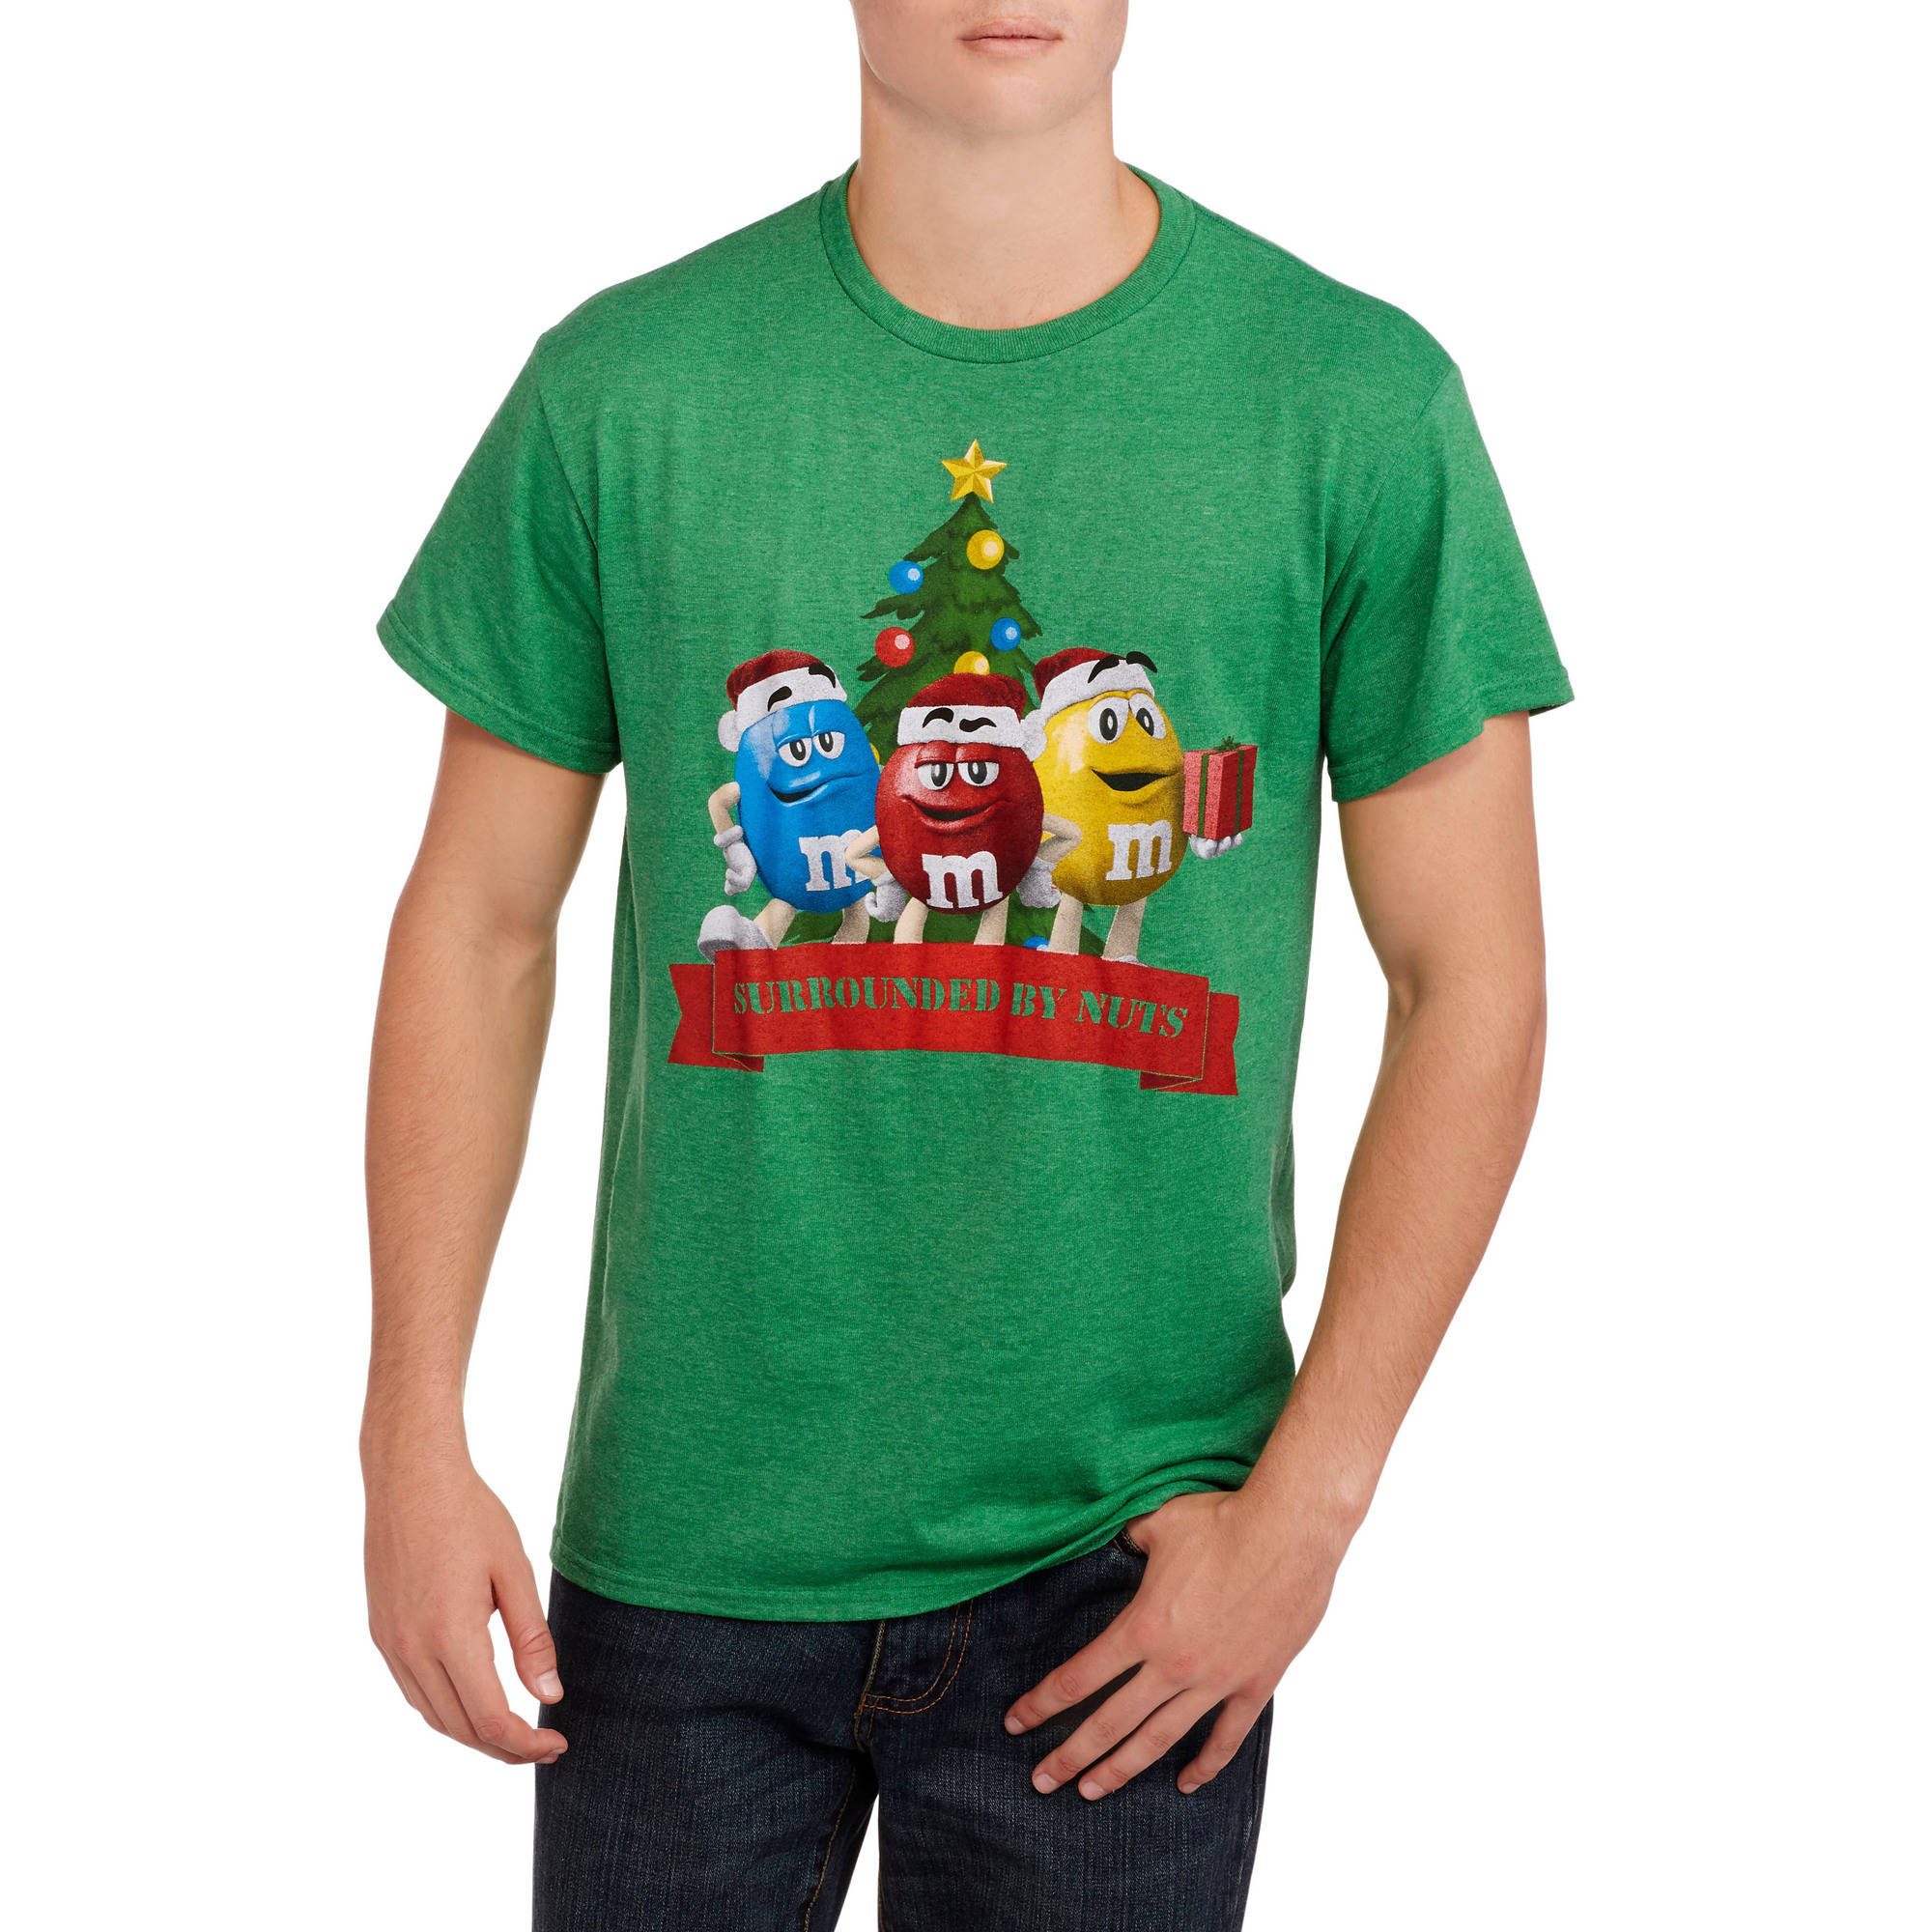 M&M's Big Men's Surrounded by Nuts Christmas Graphic Tee, 2XL